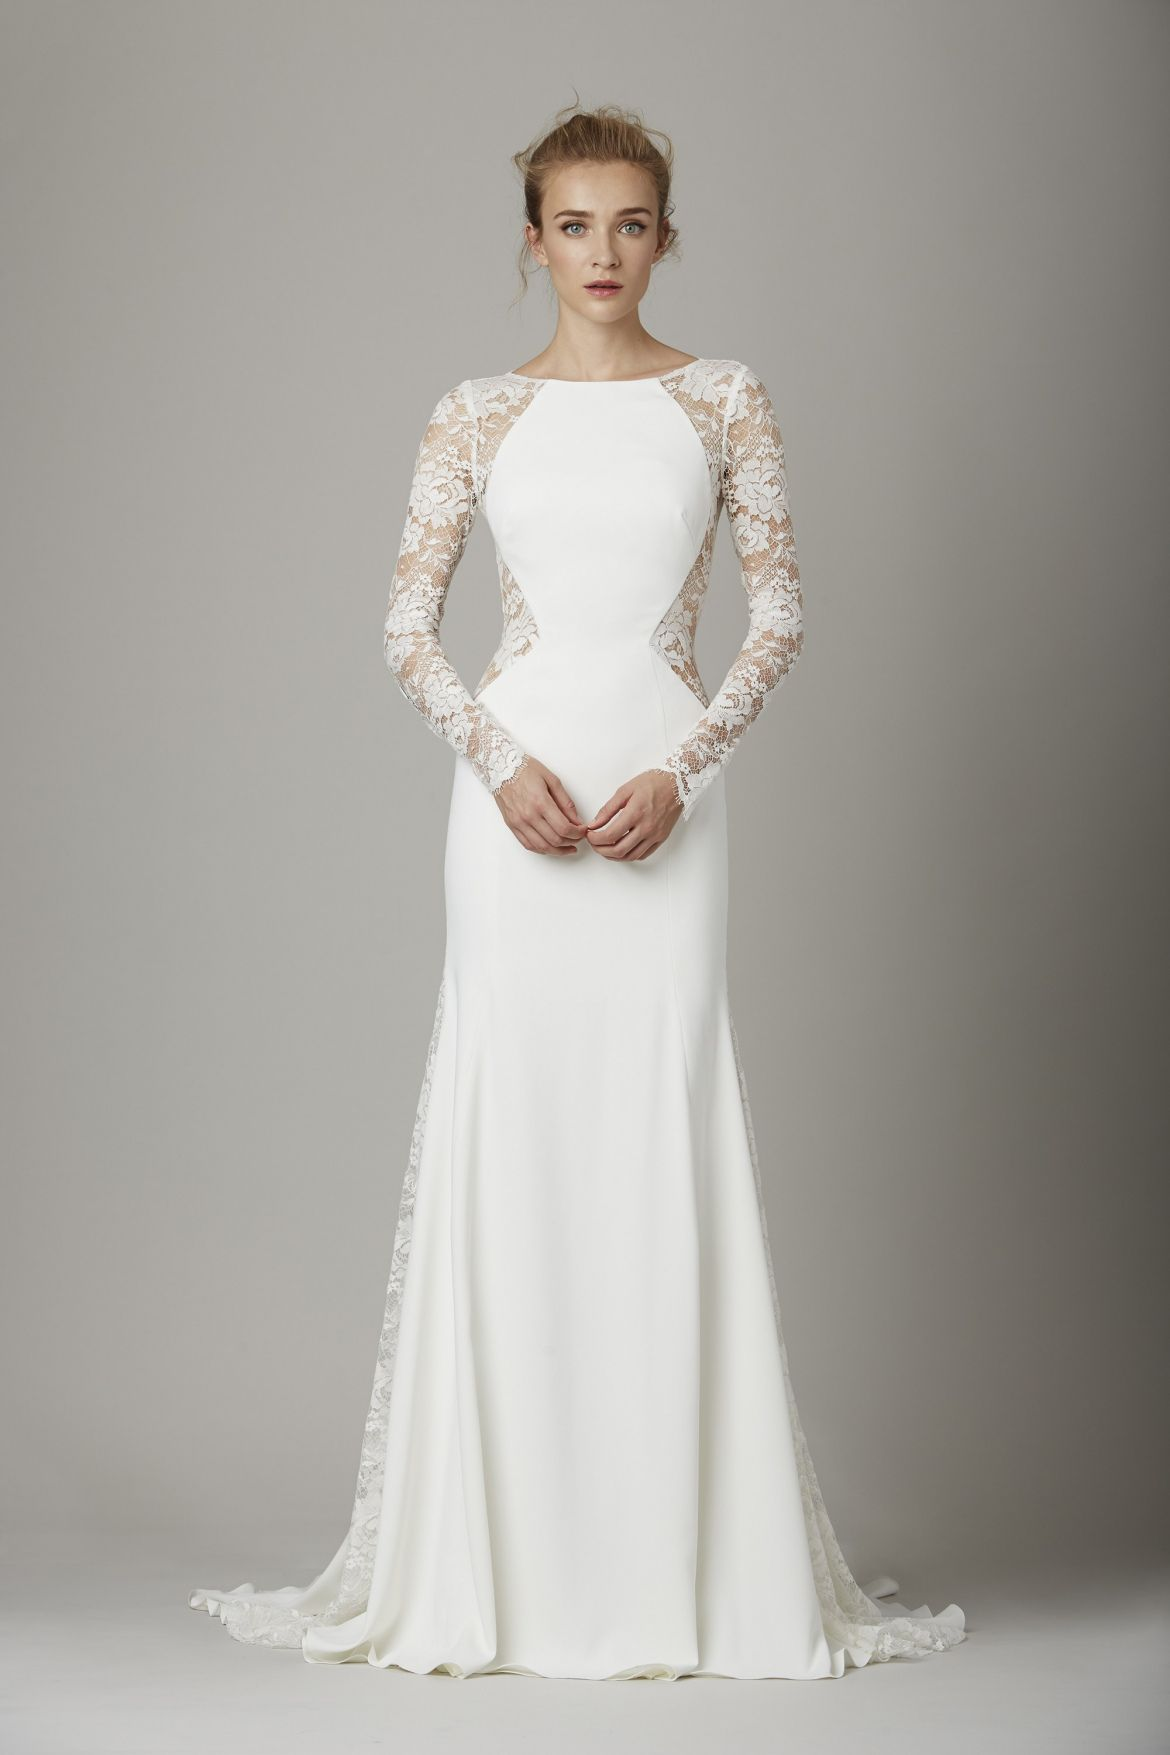 2018 Used Lace Wedding Dress How To For A Check More At Http